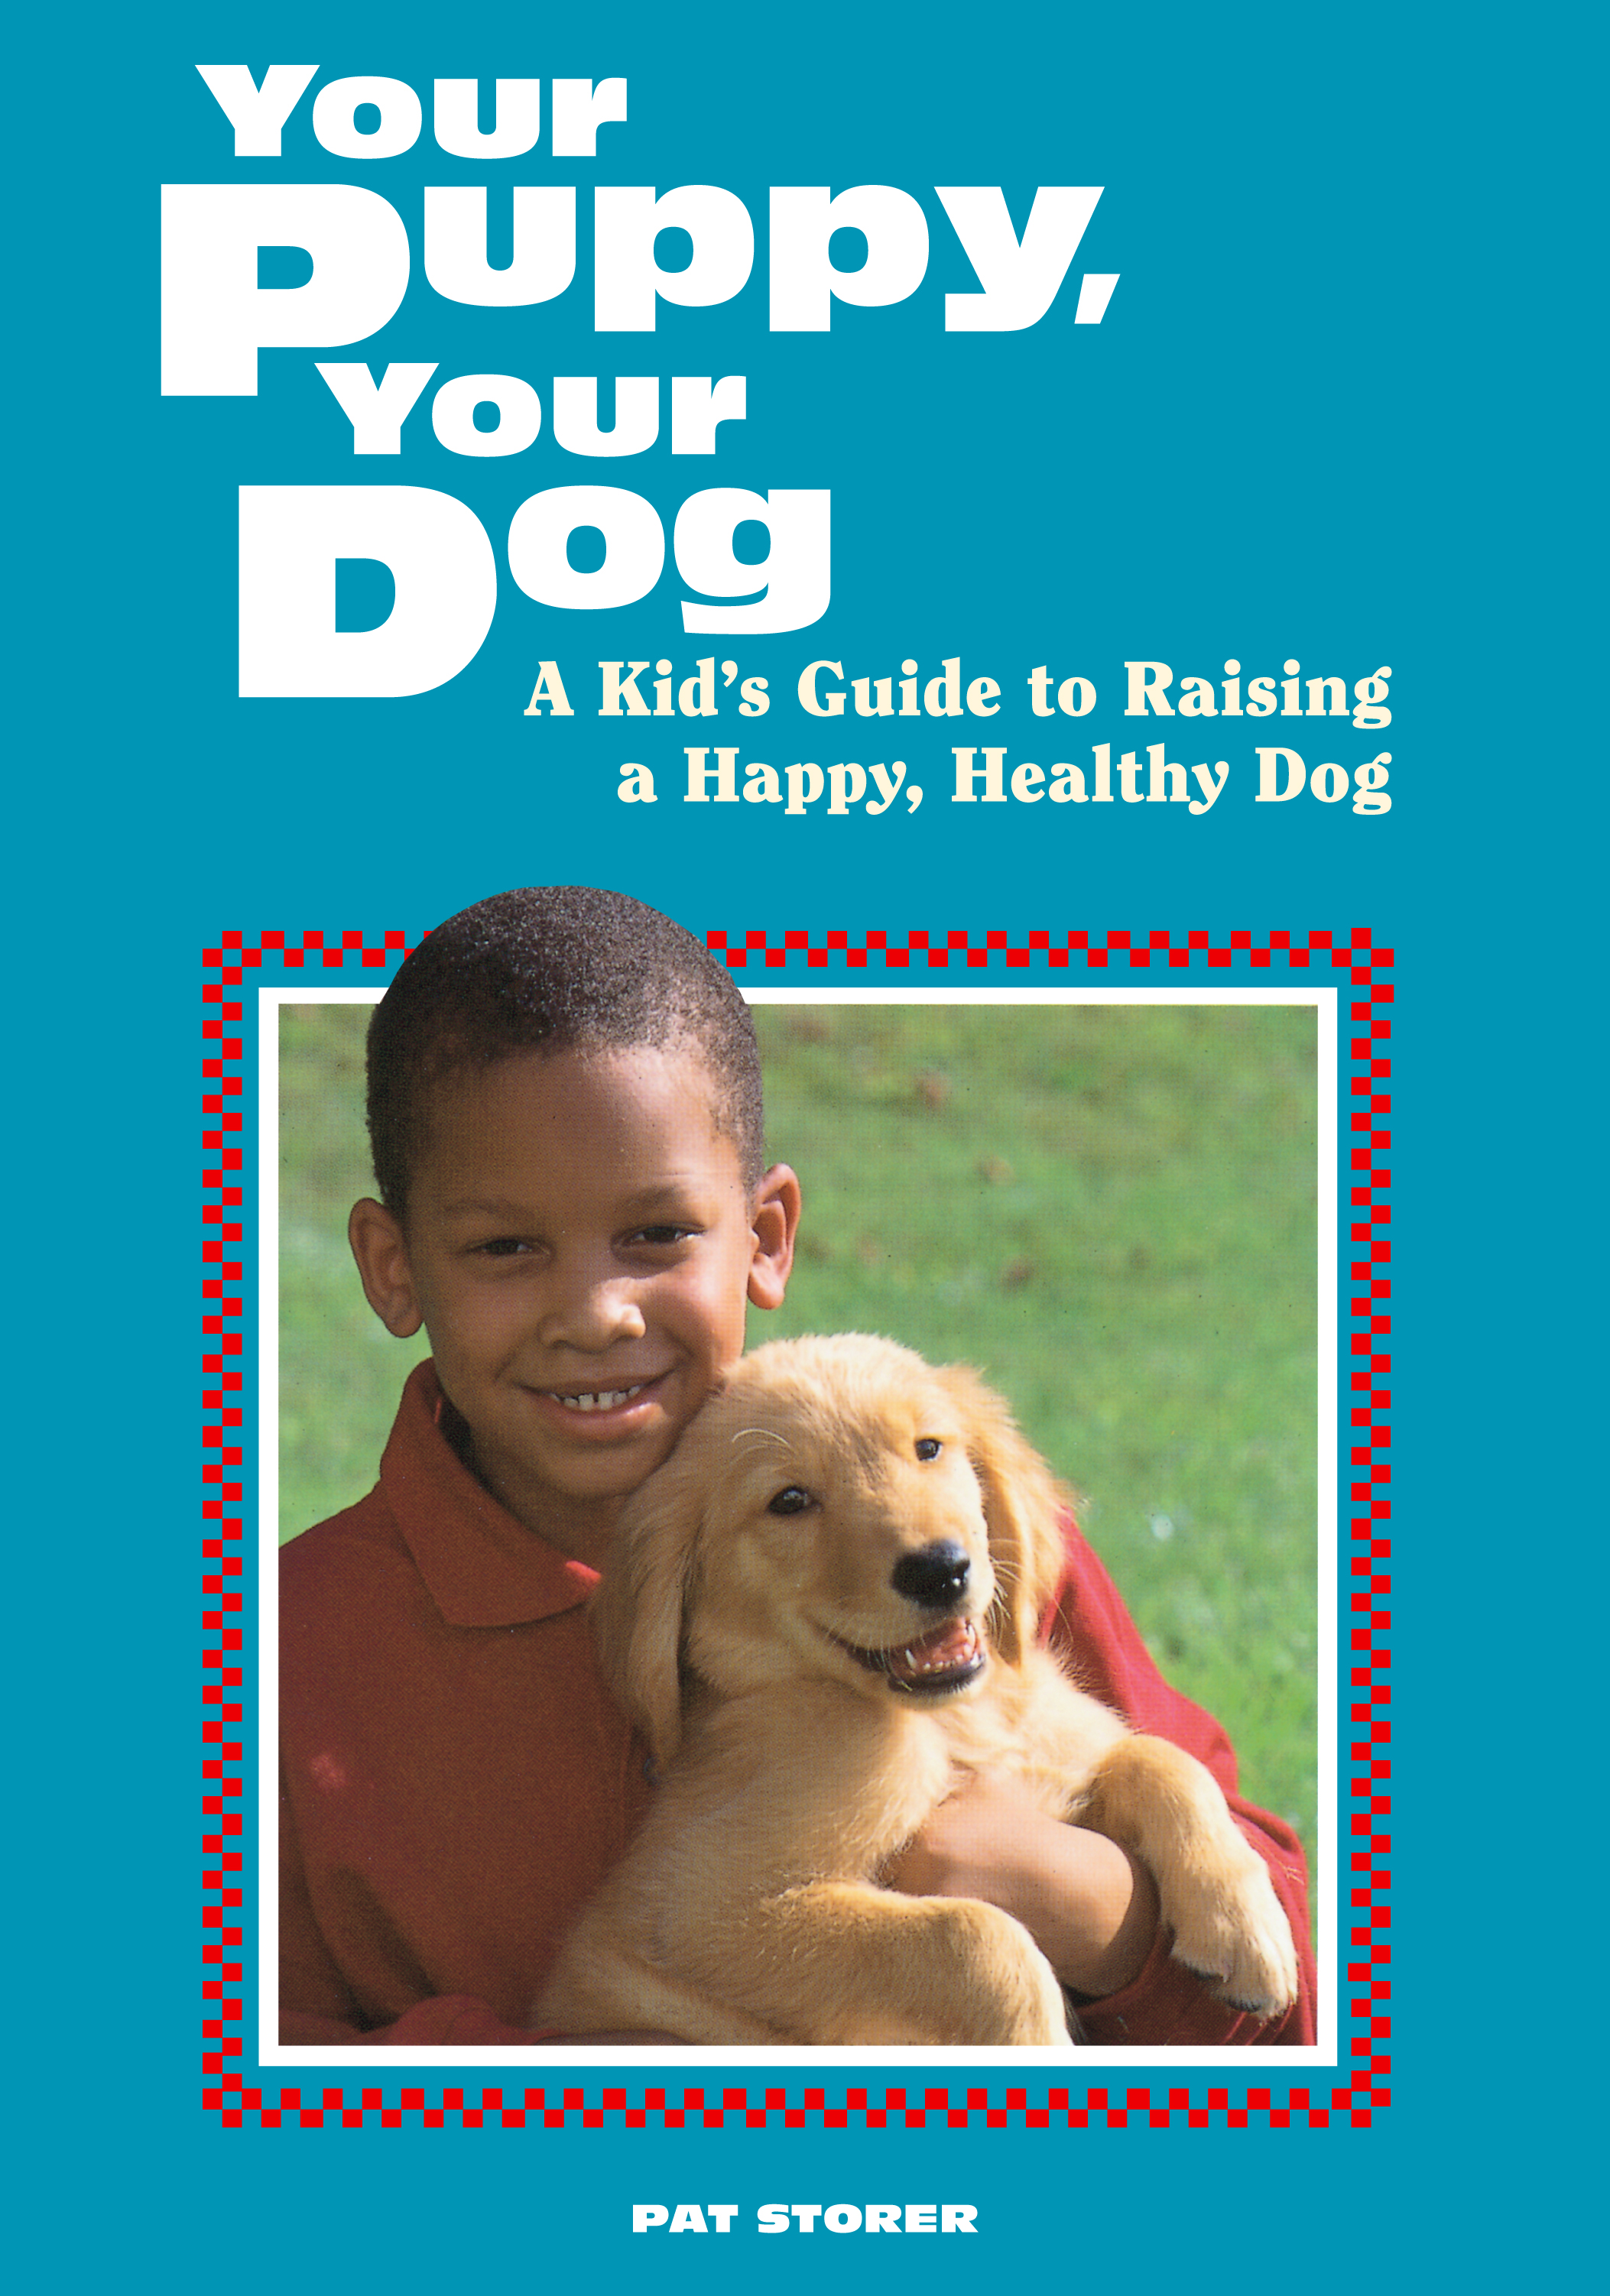 Your Puppy, Your Dog A Kid's Guide to Raising a Happy, Healthy Dog - Pat Storer